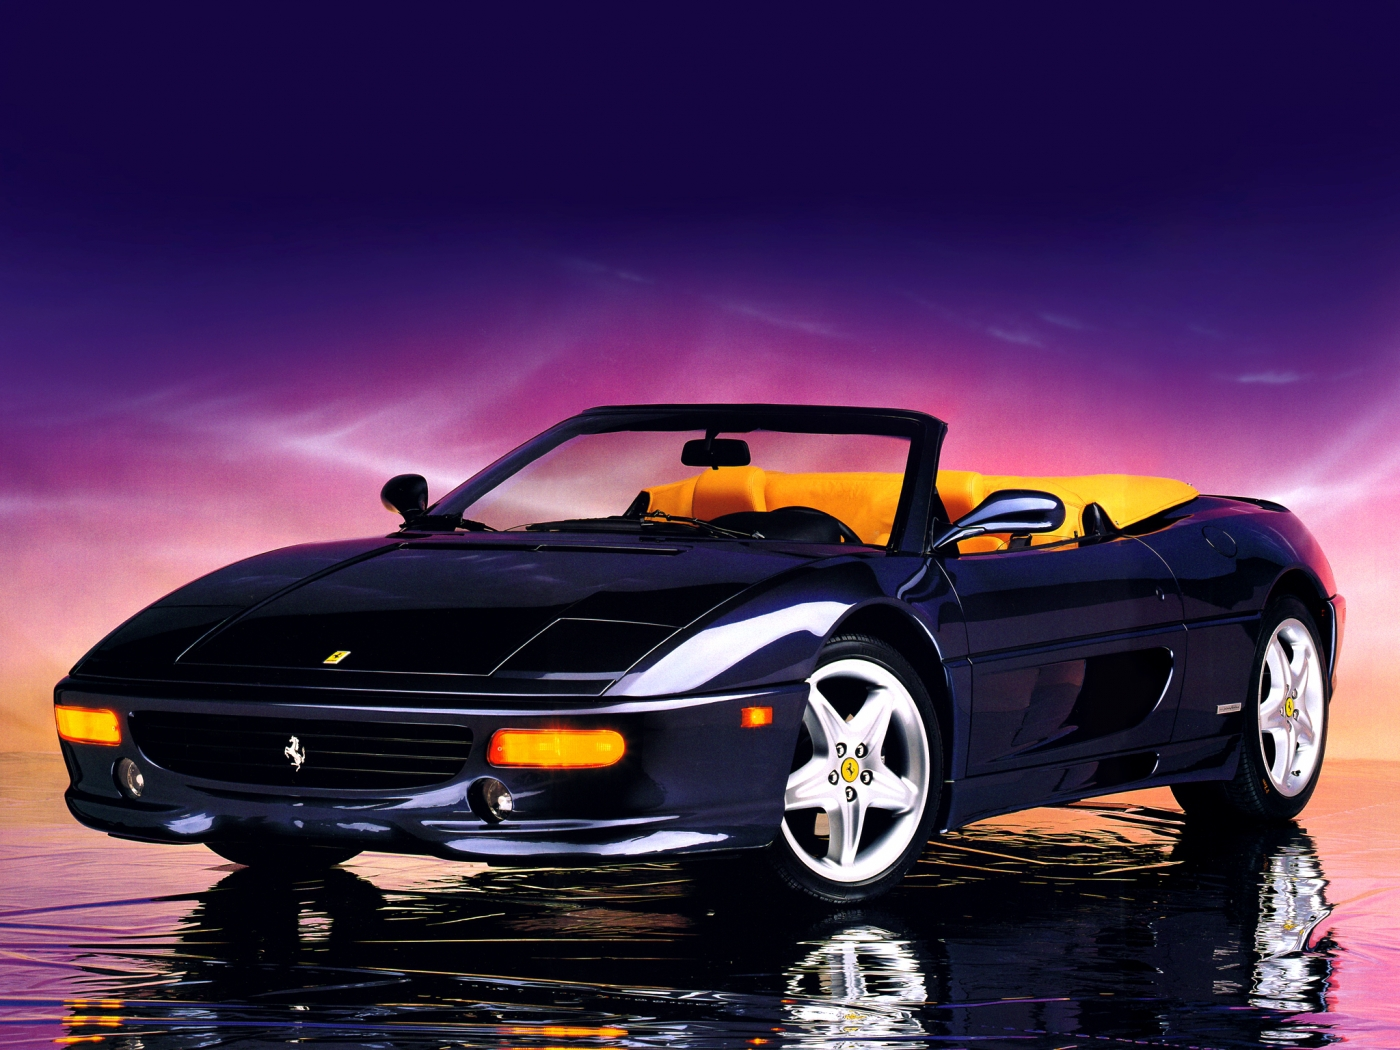 35298 download wallpaper Transport, Auto, Ferrari screensavers and pictures for free